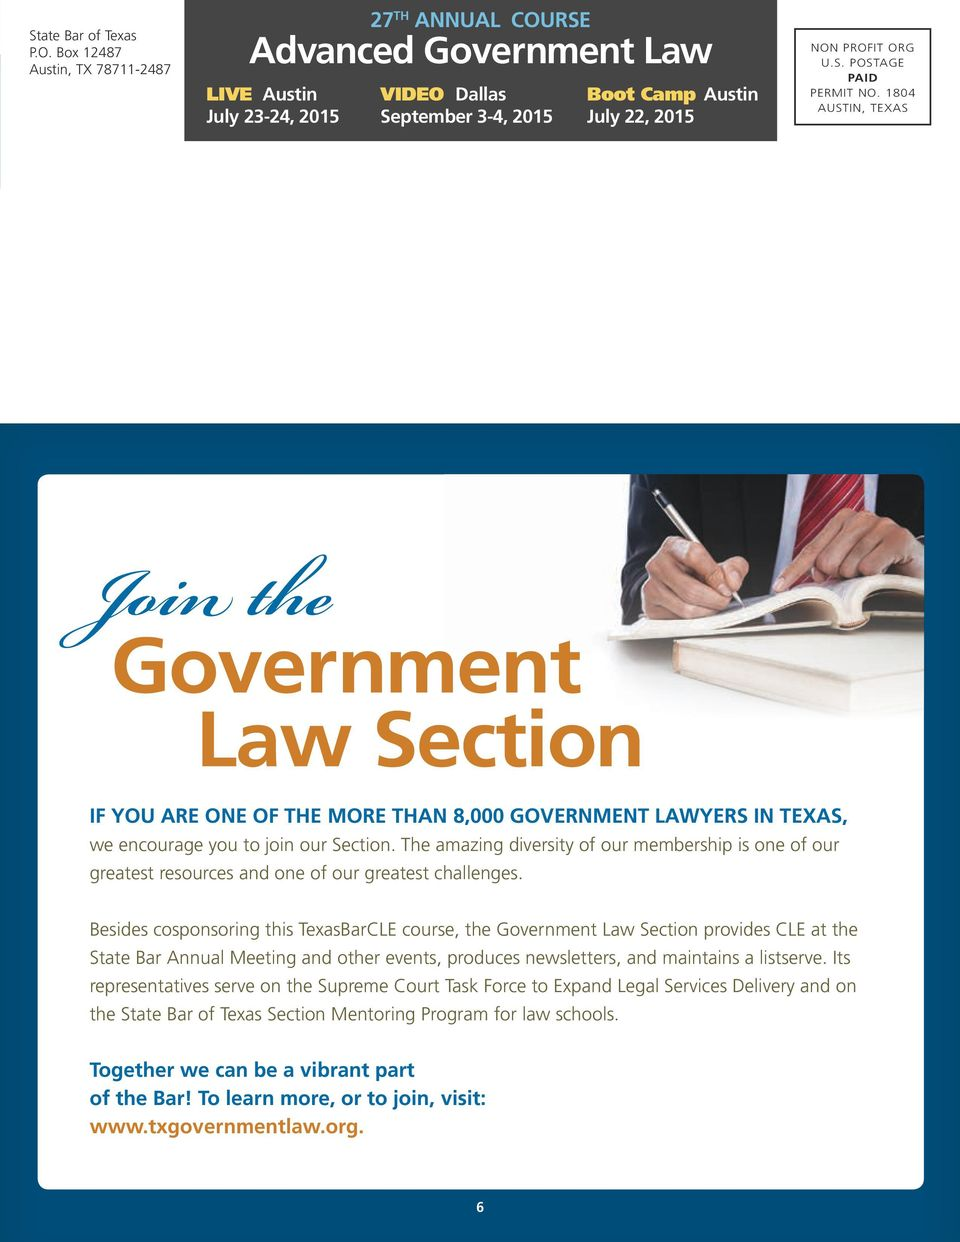 1804 AUSTIN, TEXAS Join the Government Law Section IF YOU ARE ONE OF THE MORE THAN 8,000 GOVERNMENT LAWYERS IN TEXAS, we encourage you to join our Section.